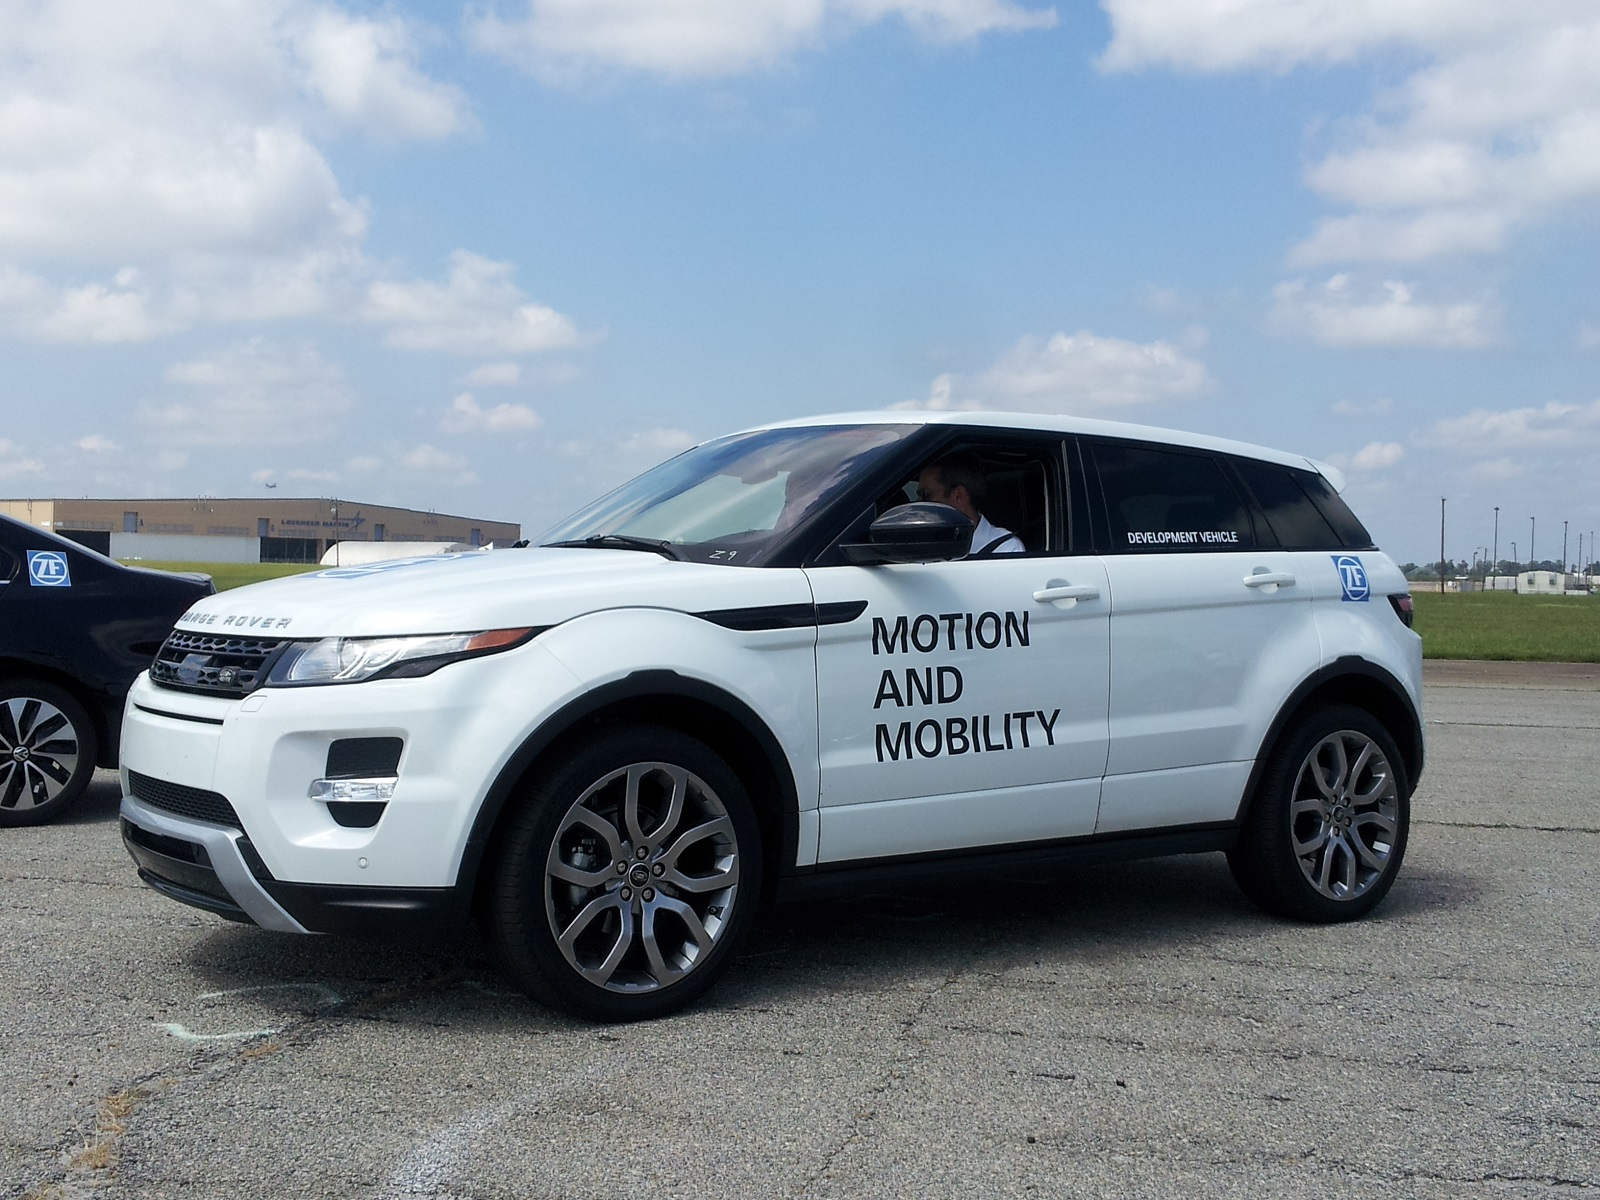 land original s evoque range driver review car photo reviews test landrover and rover